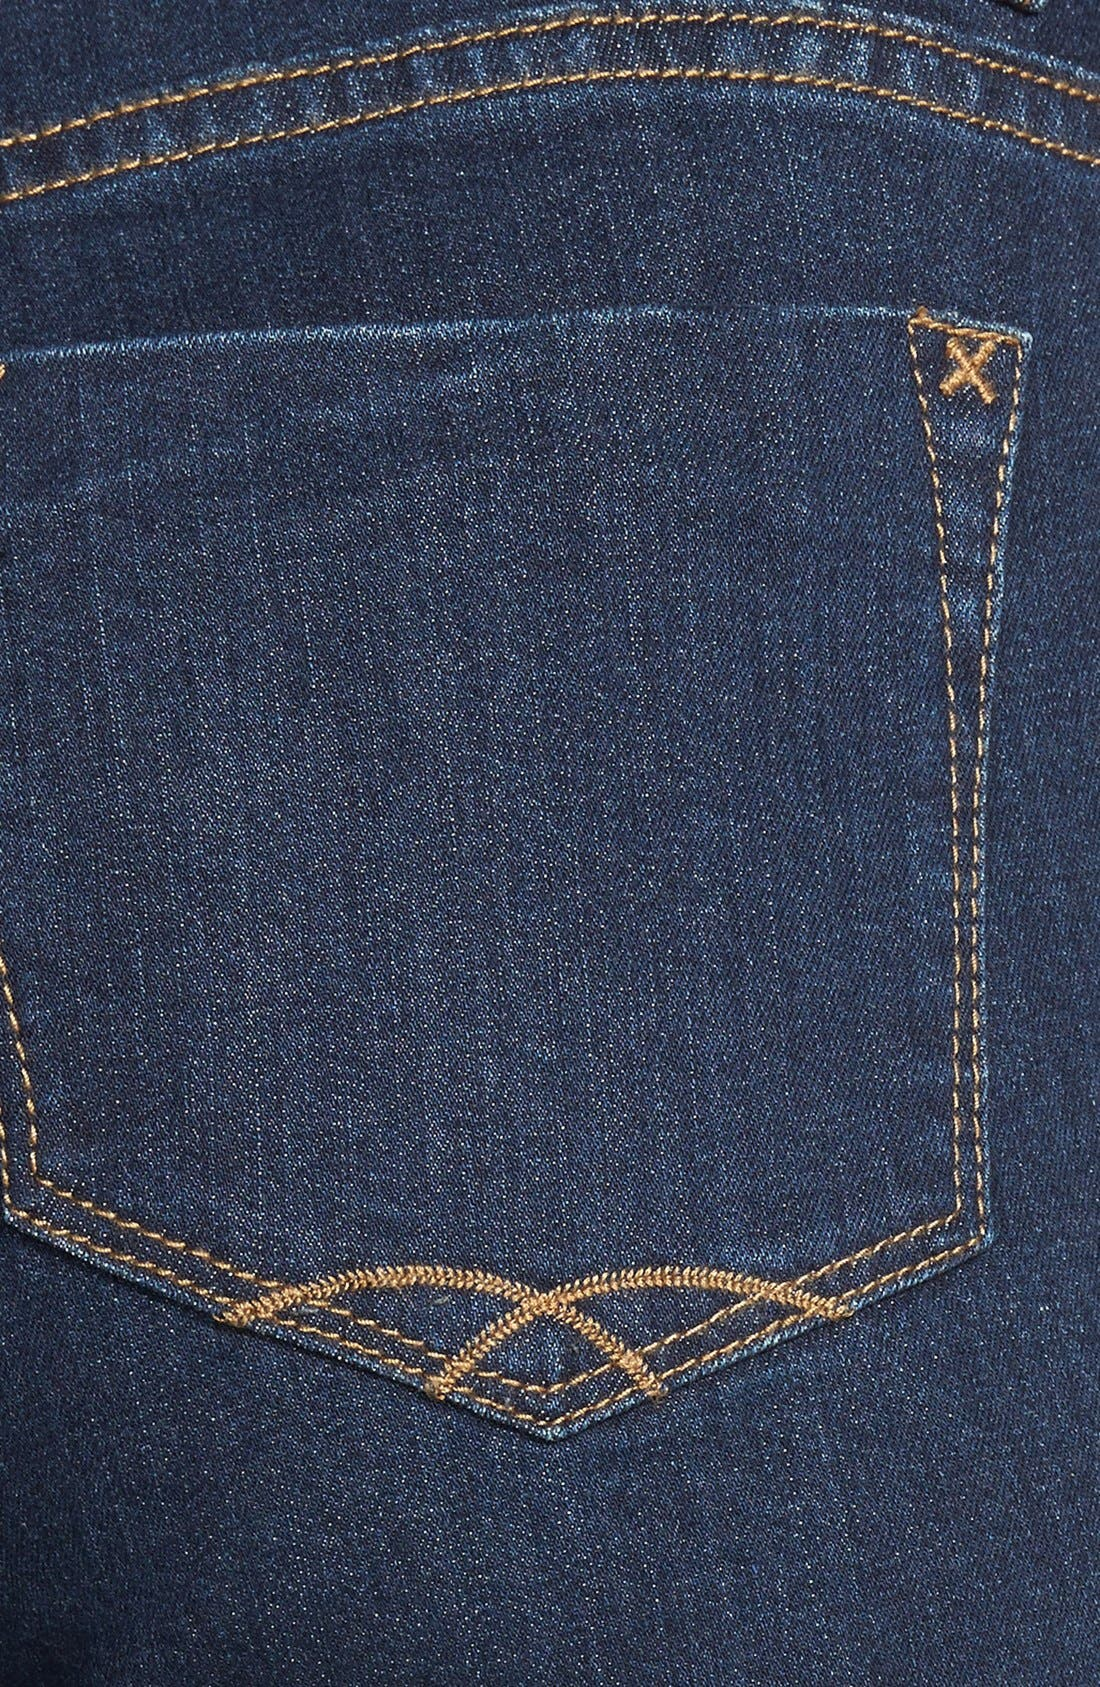 Alternate Image 3  - Christopher Blue 'Sophia' Stretch Skinny Jeans